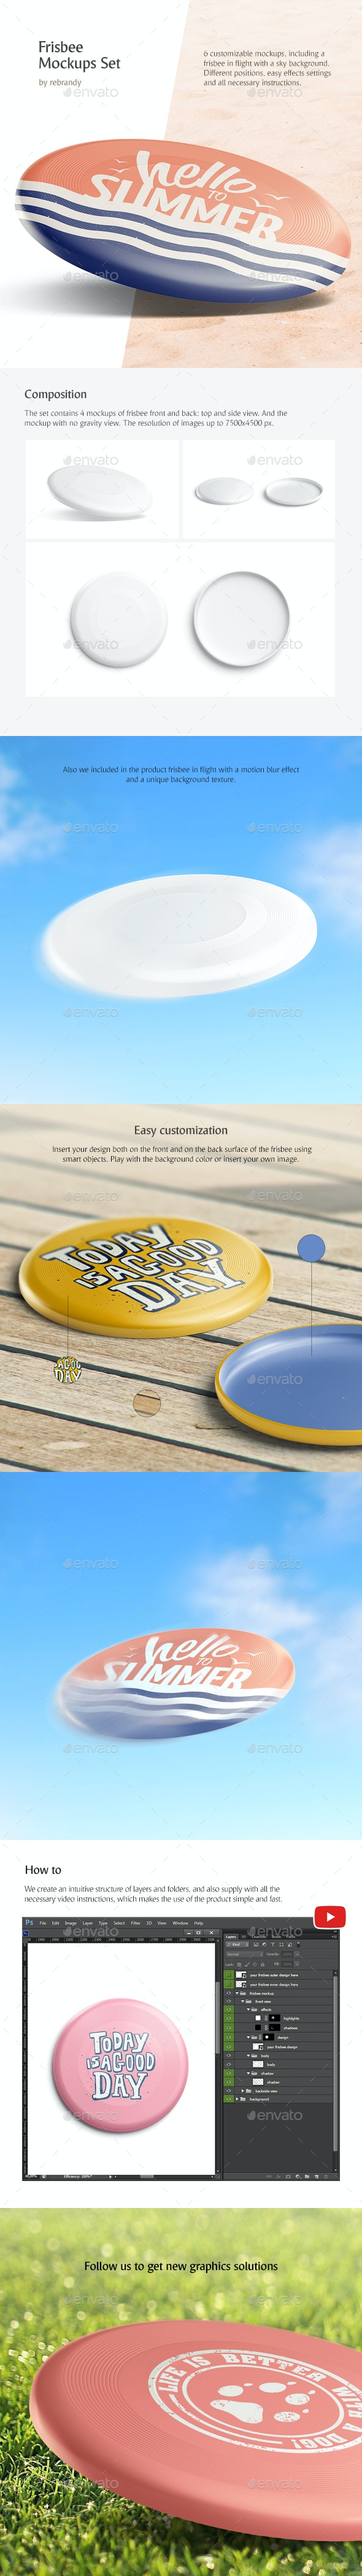 Frisbee Mockups Set - Product Mock-Ups Graphics